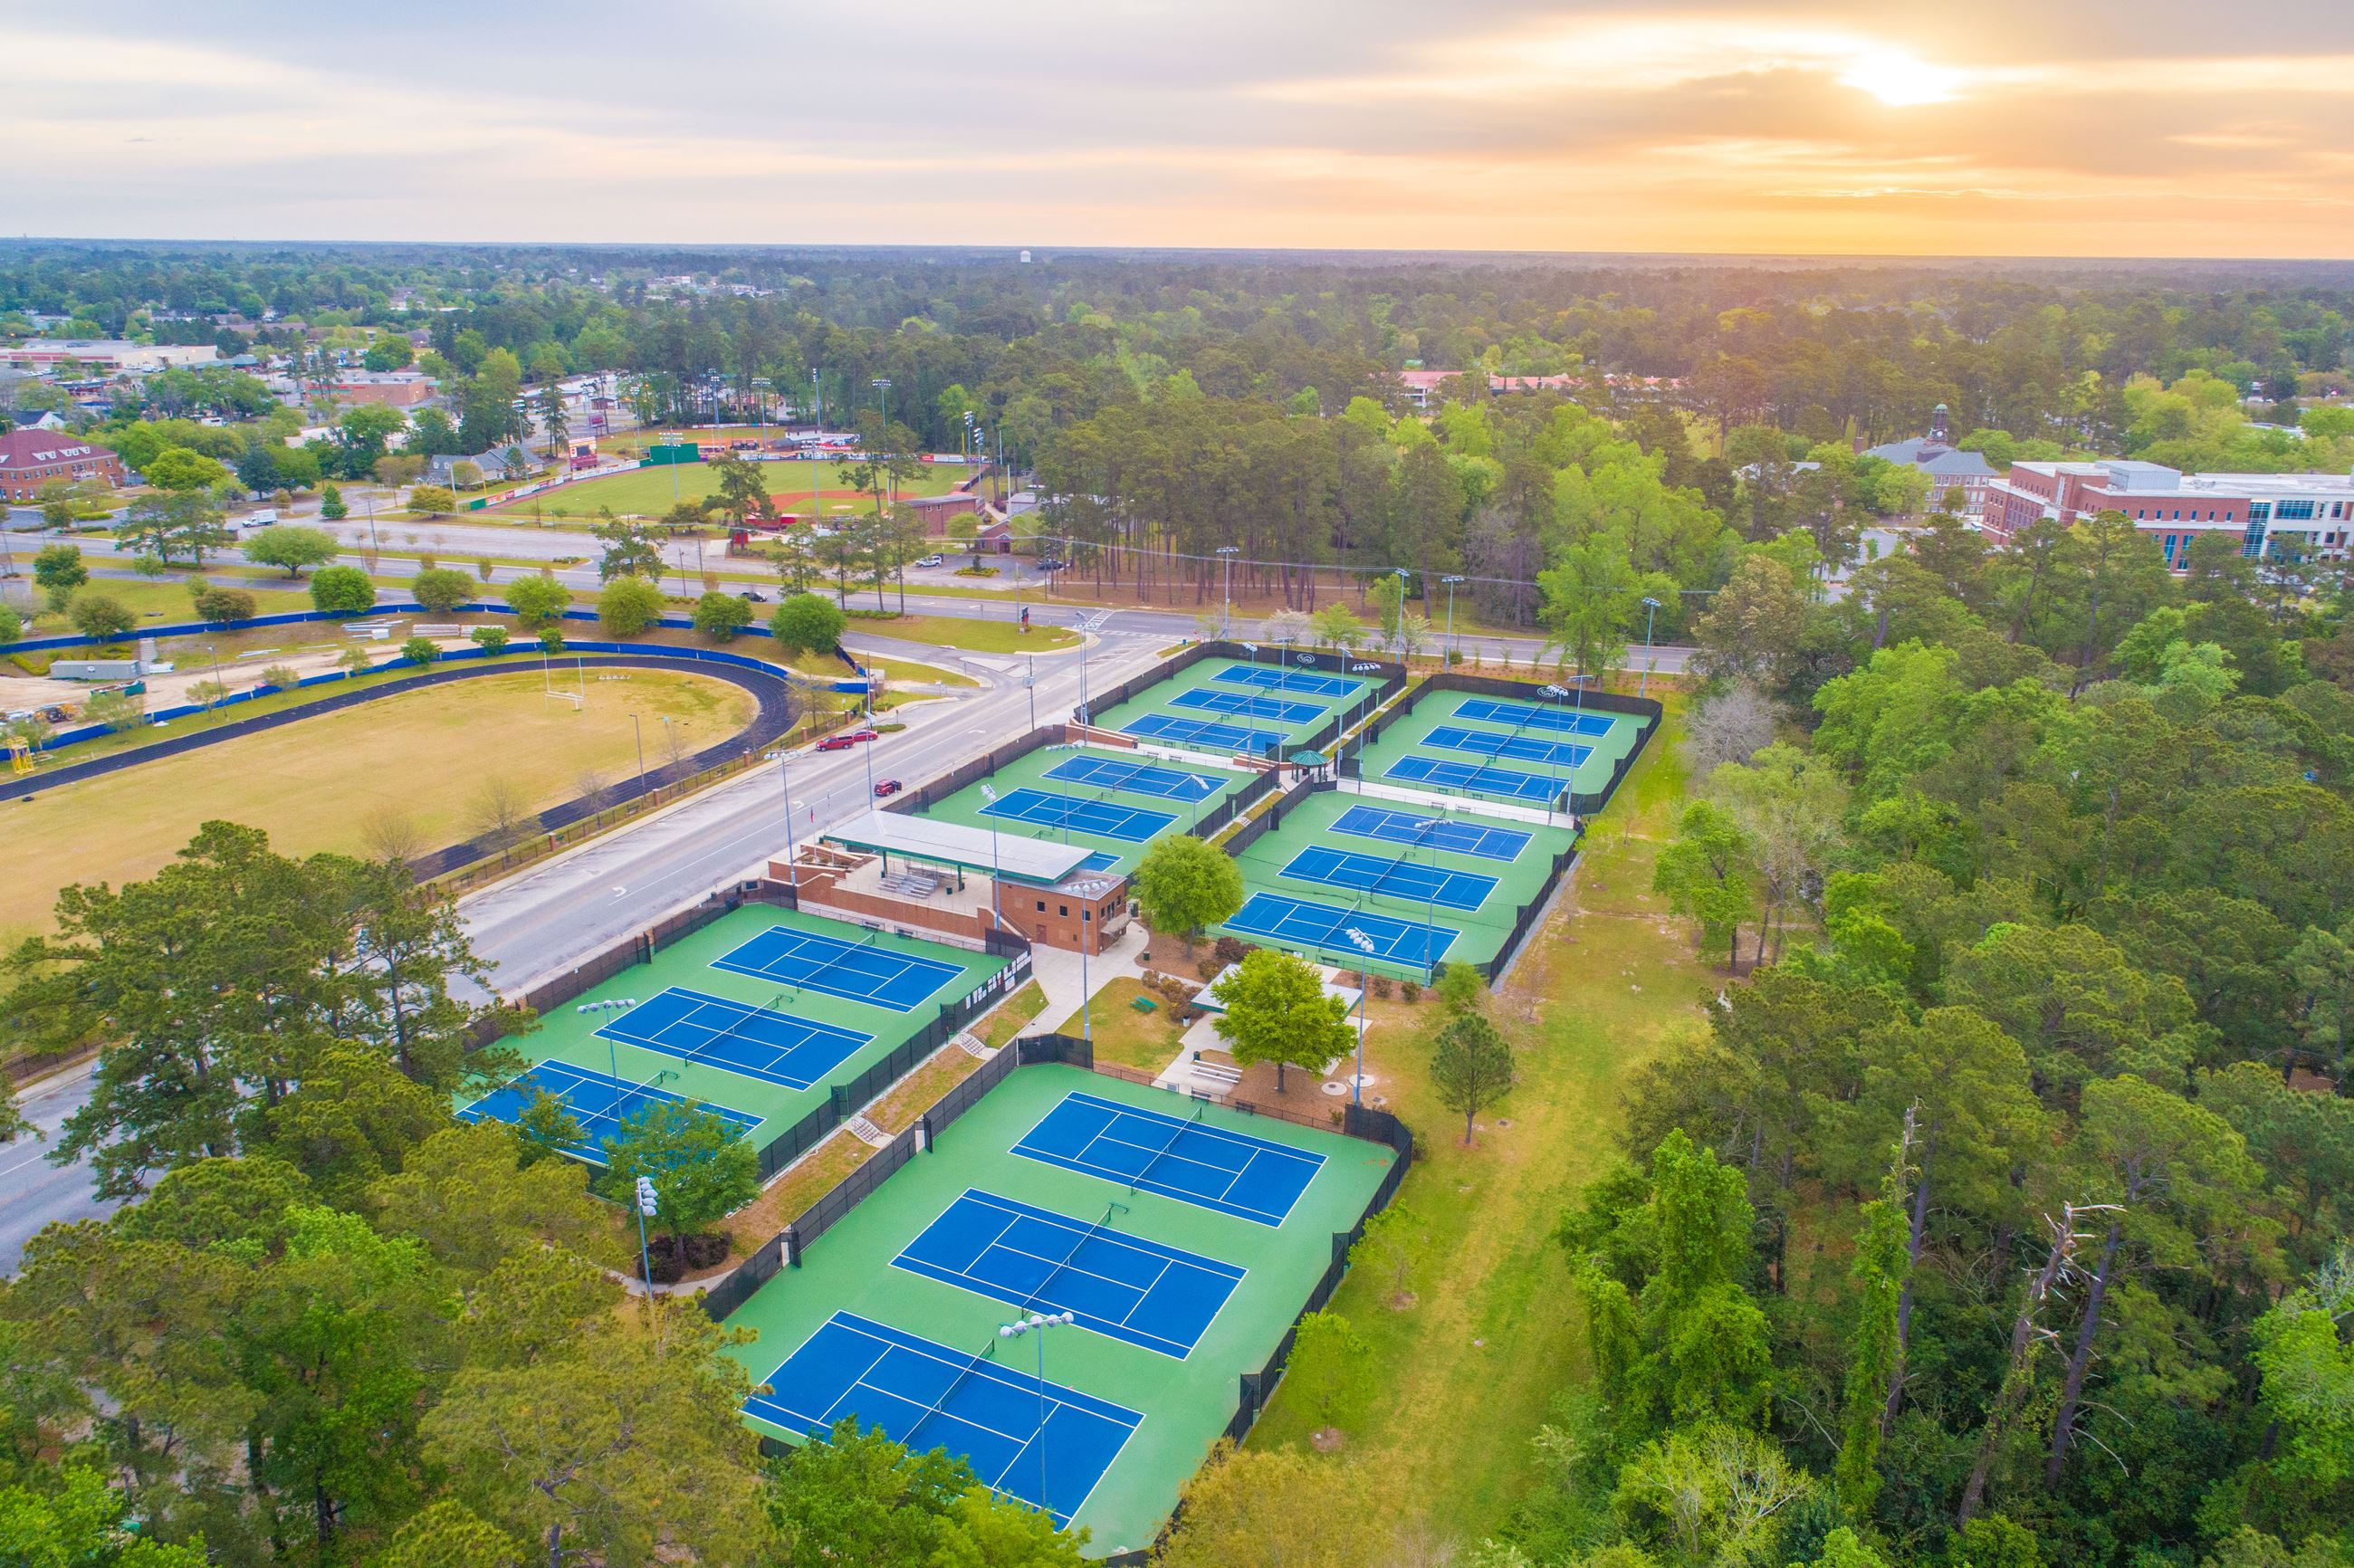 Aerial image of tennis courts.